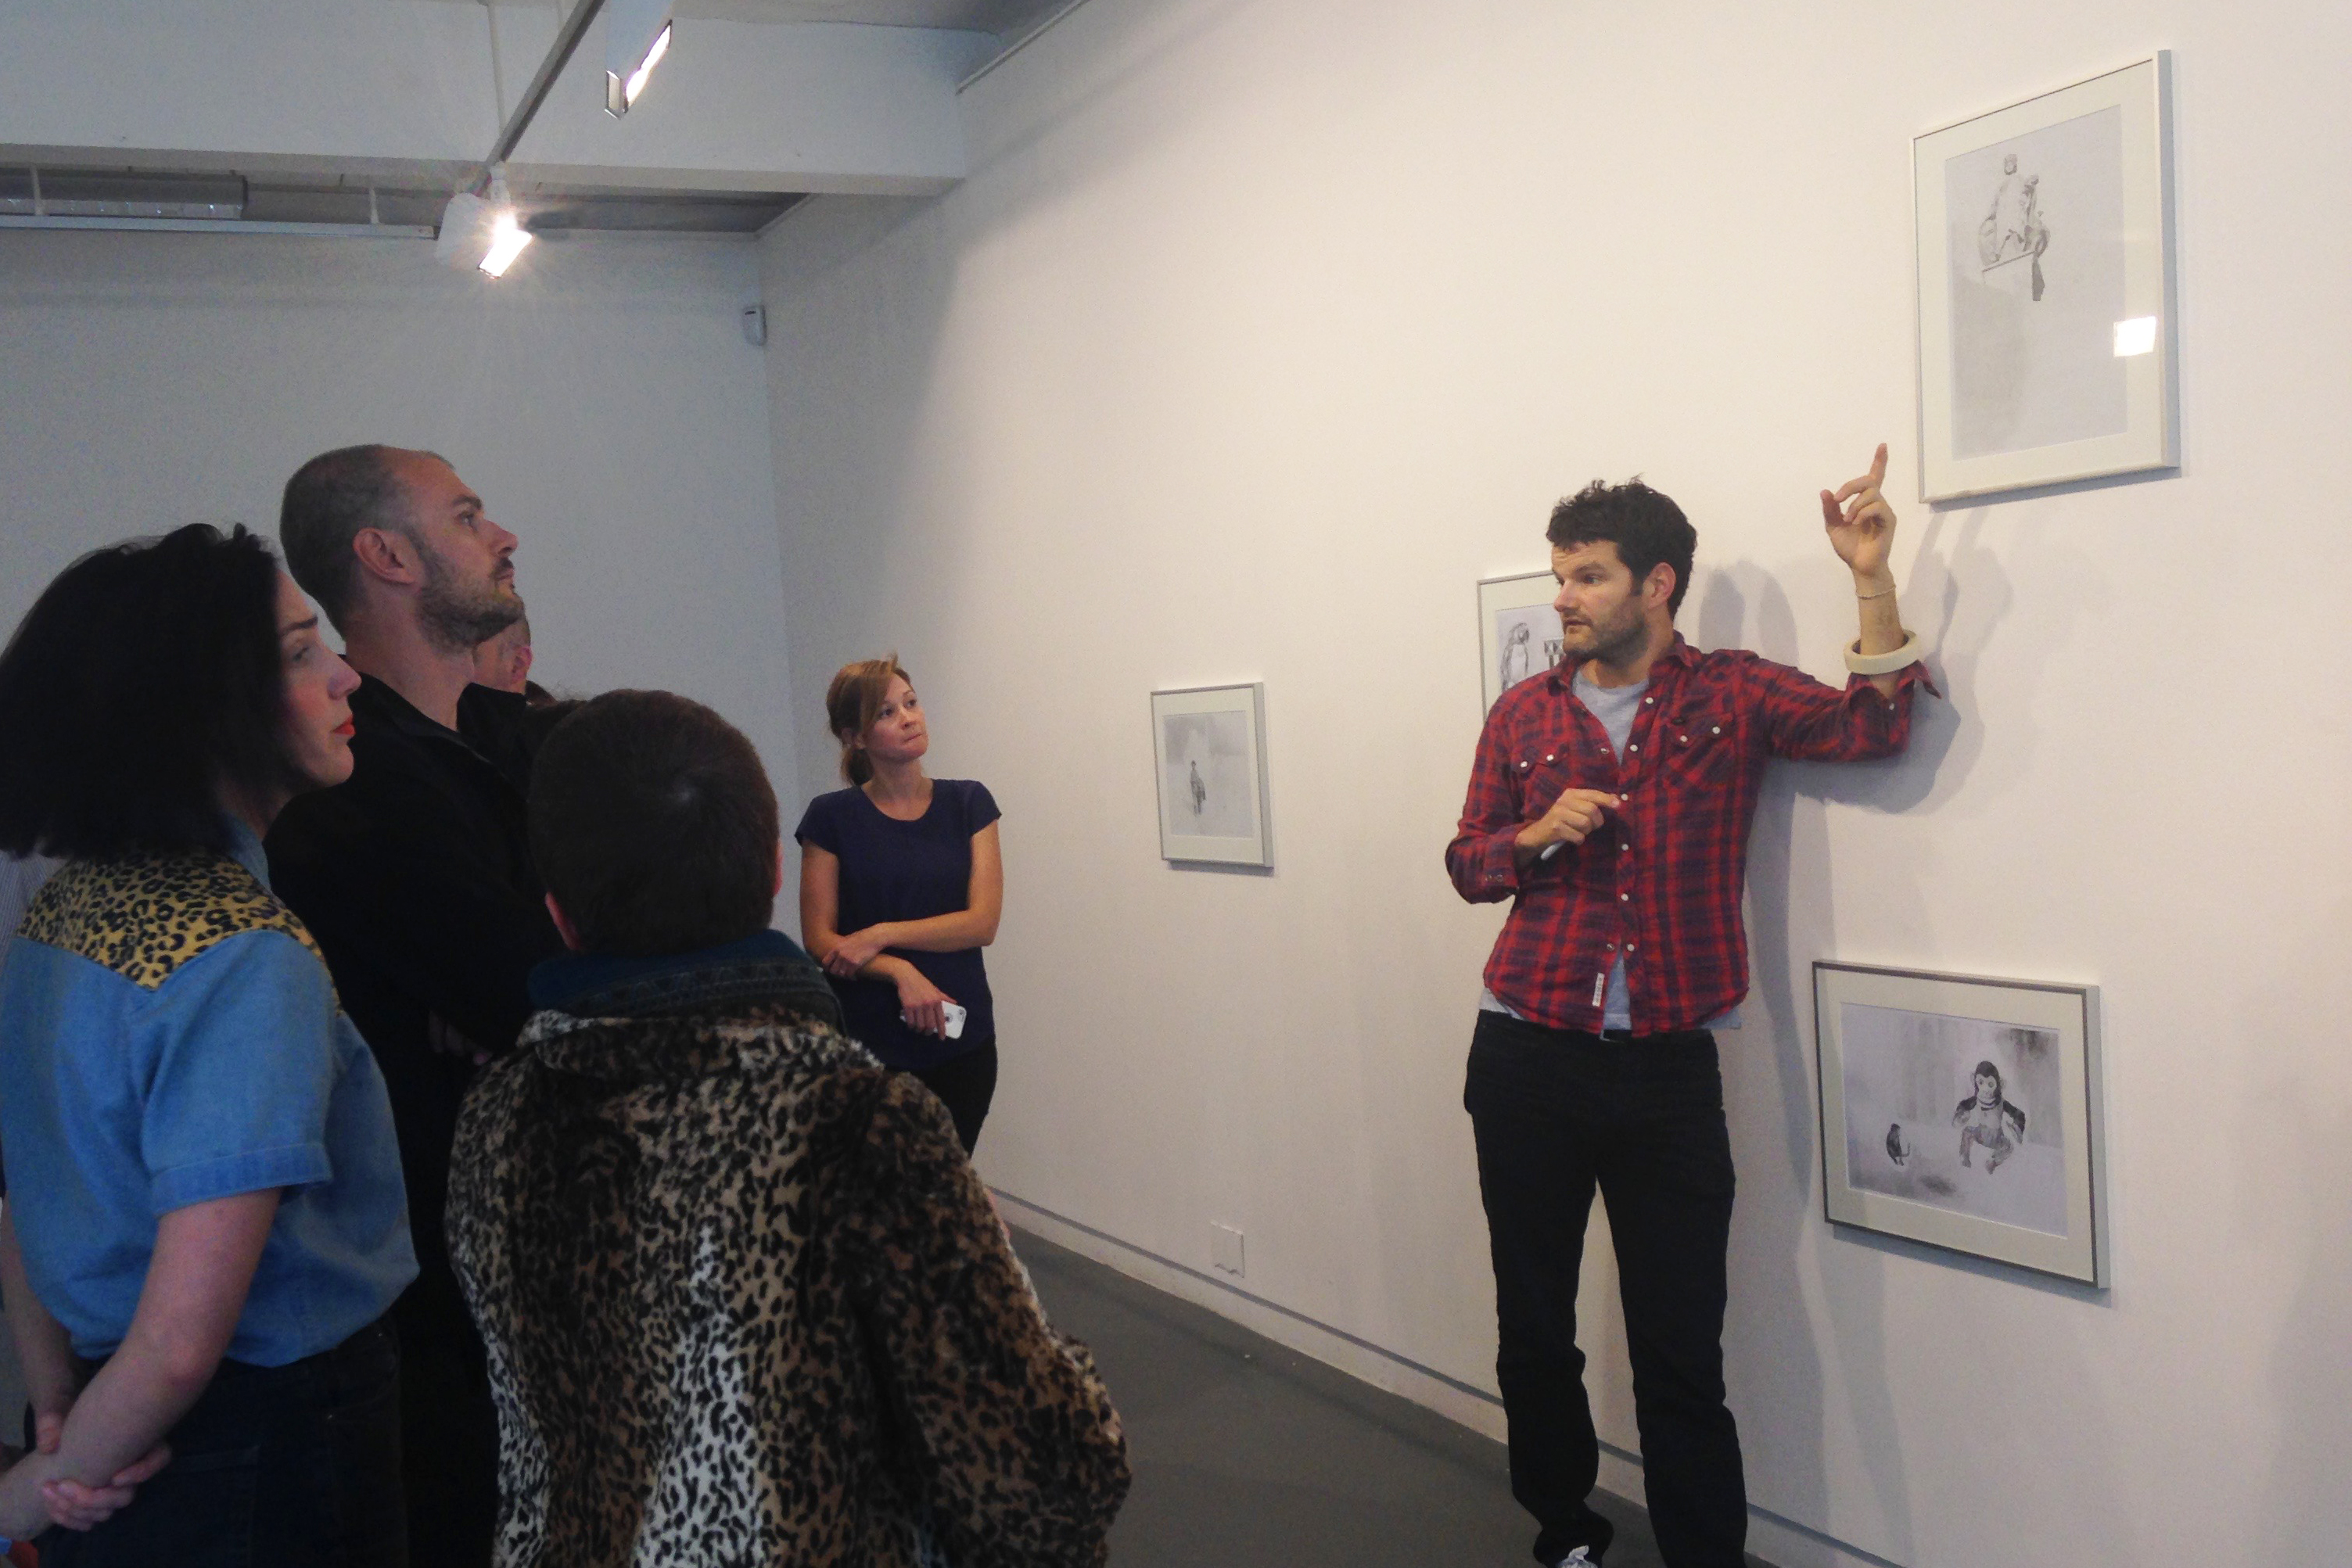 Danny Holcroft discusses his work with audience members at 'Lost in Translation' 12 to 18 June 2016 An installation of drawings, paintings, sculptures, performance and video by Danny Holcroft at The Project Room, Trongate 103, Glasgow © Cultural Documents